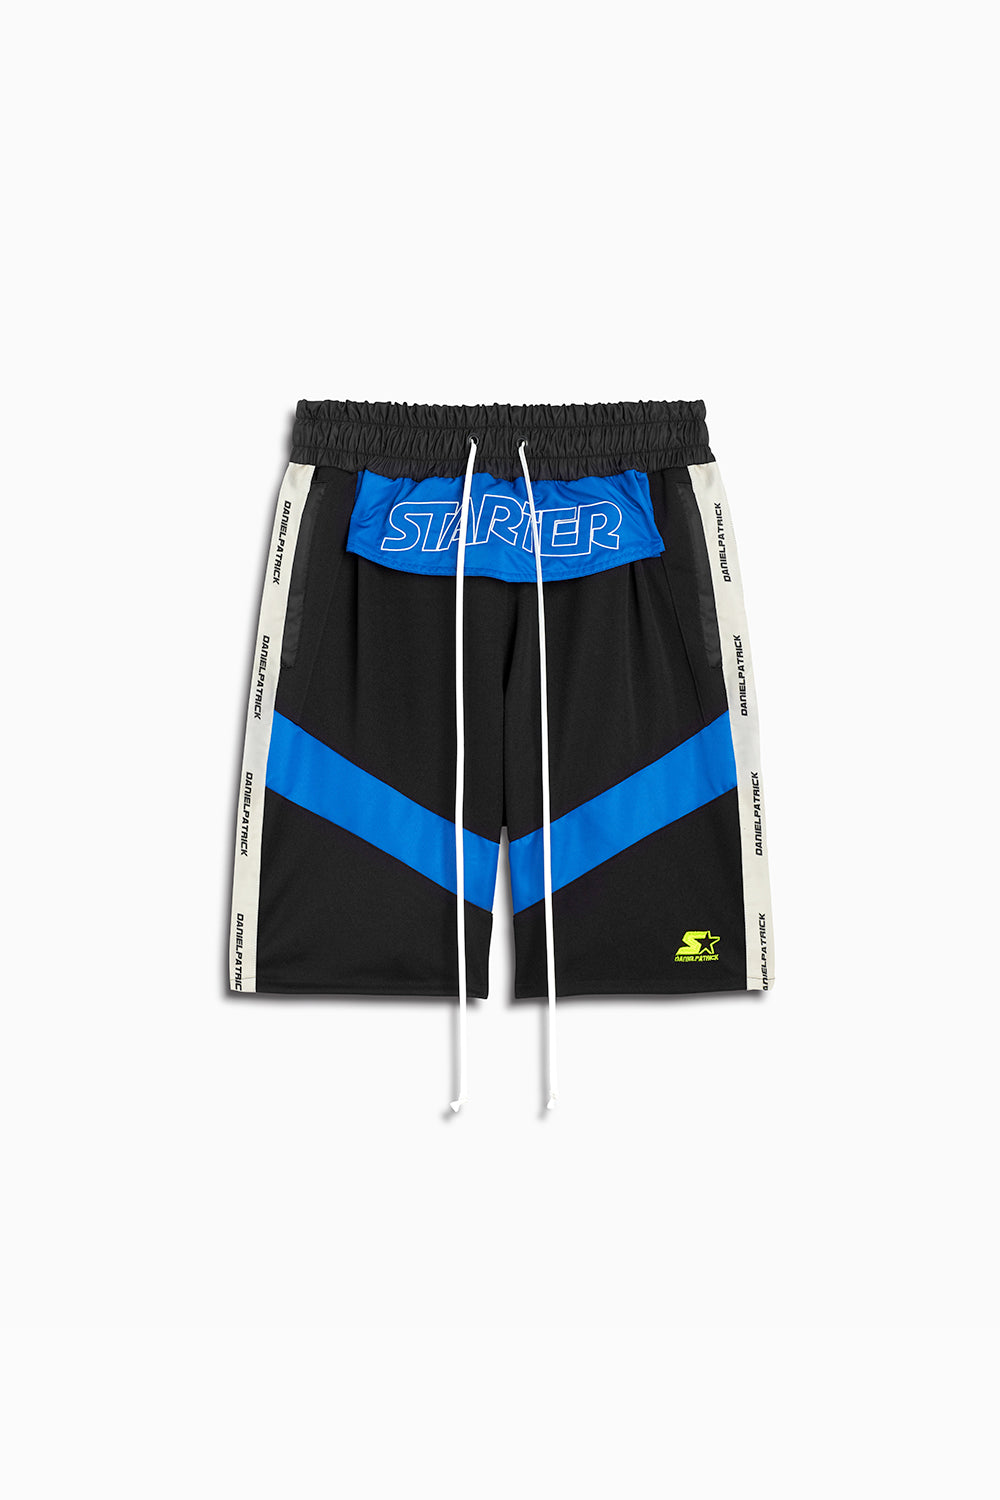 dp starter breakaway shorts in black/cobalt/ivory by daniel patrick x starter